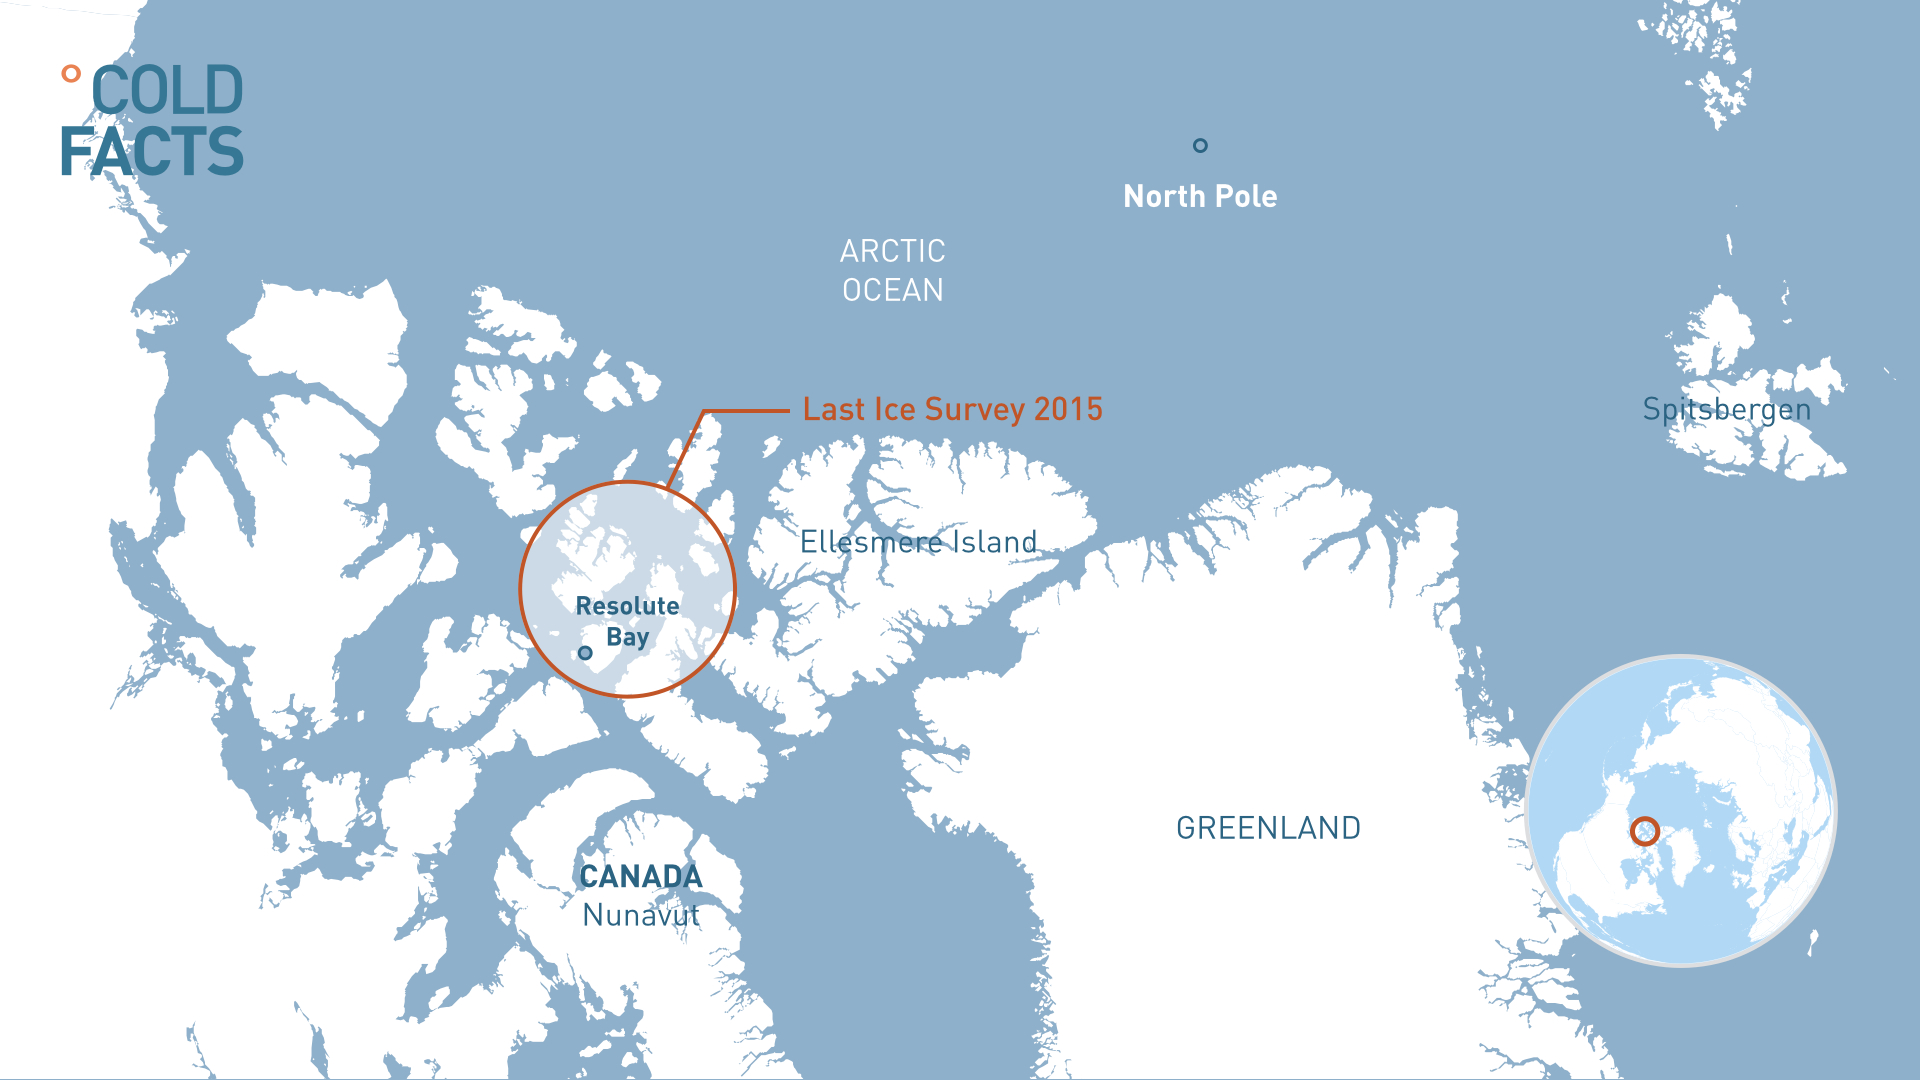 Last Ice Survey 2015 map